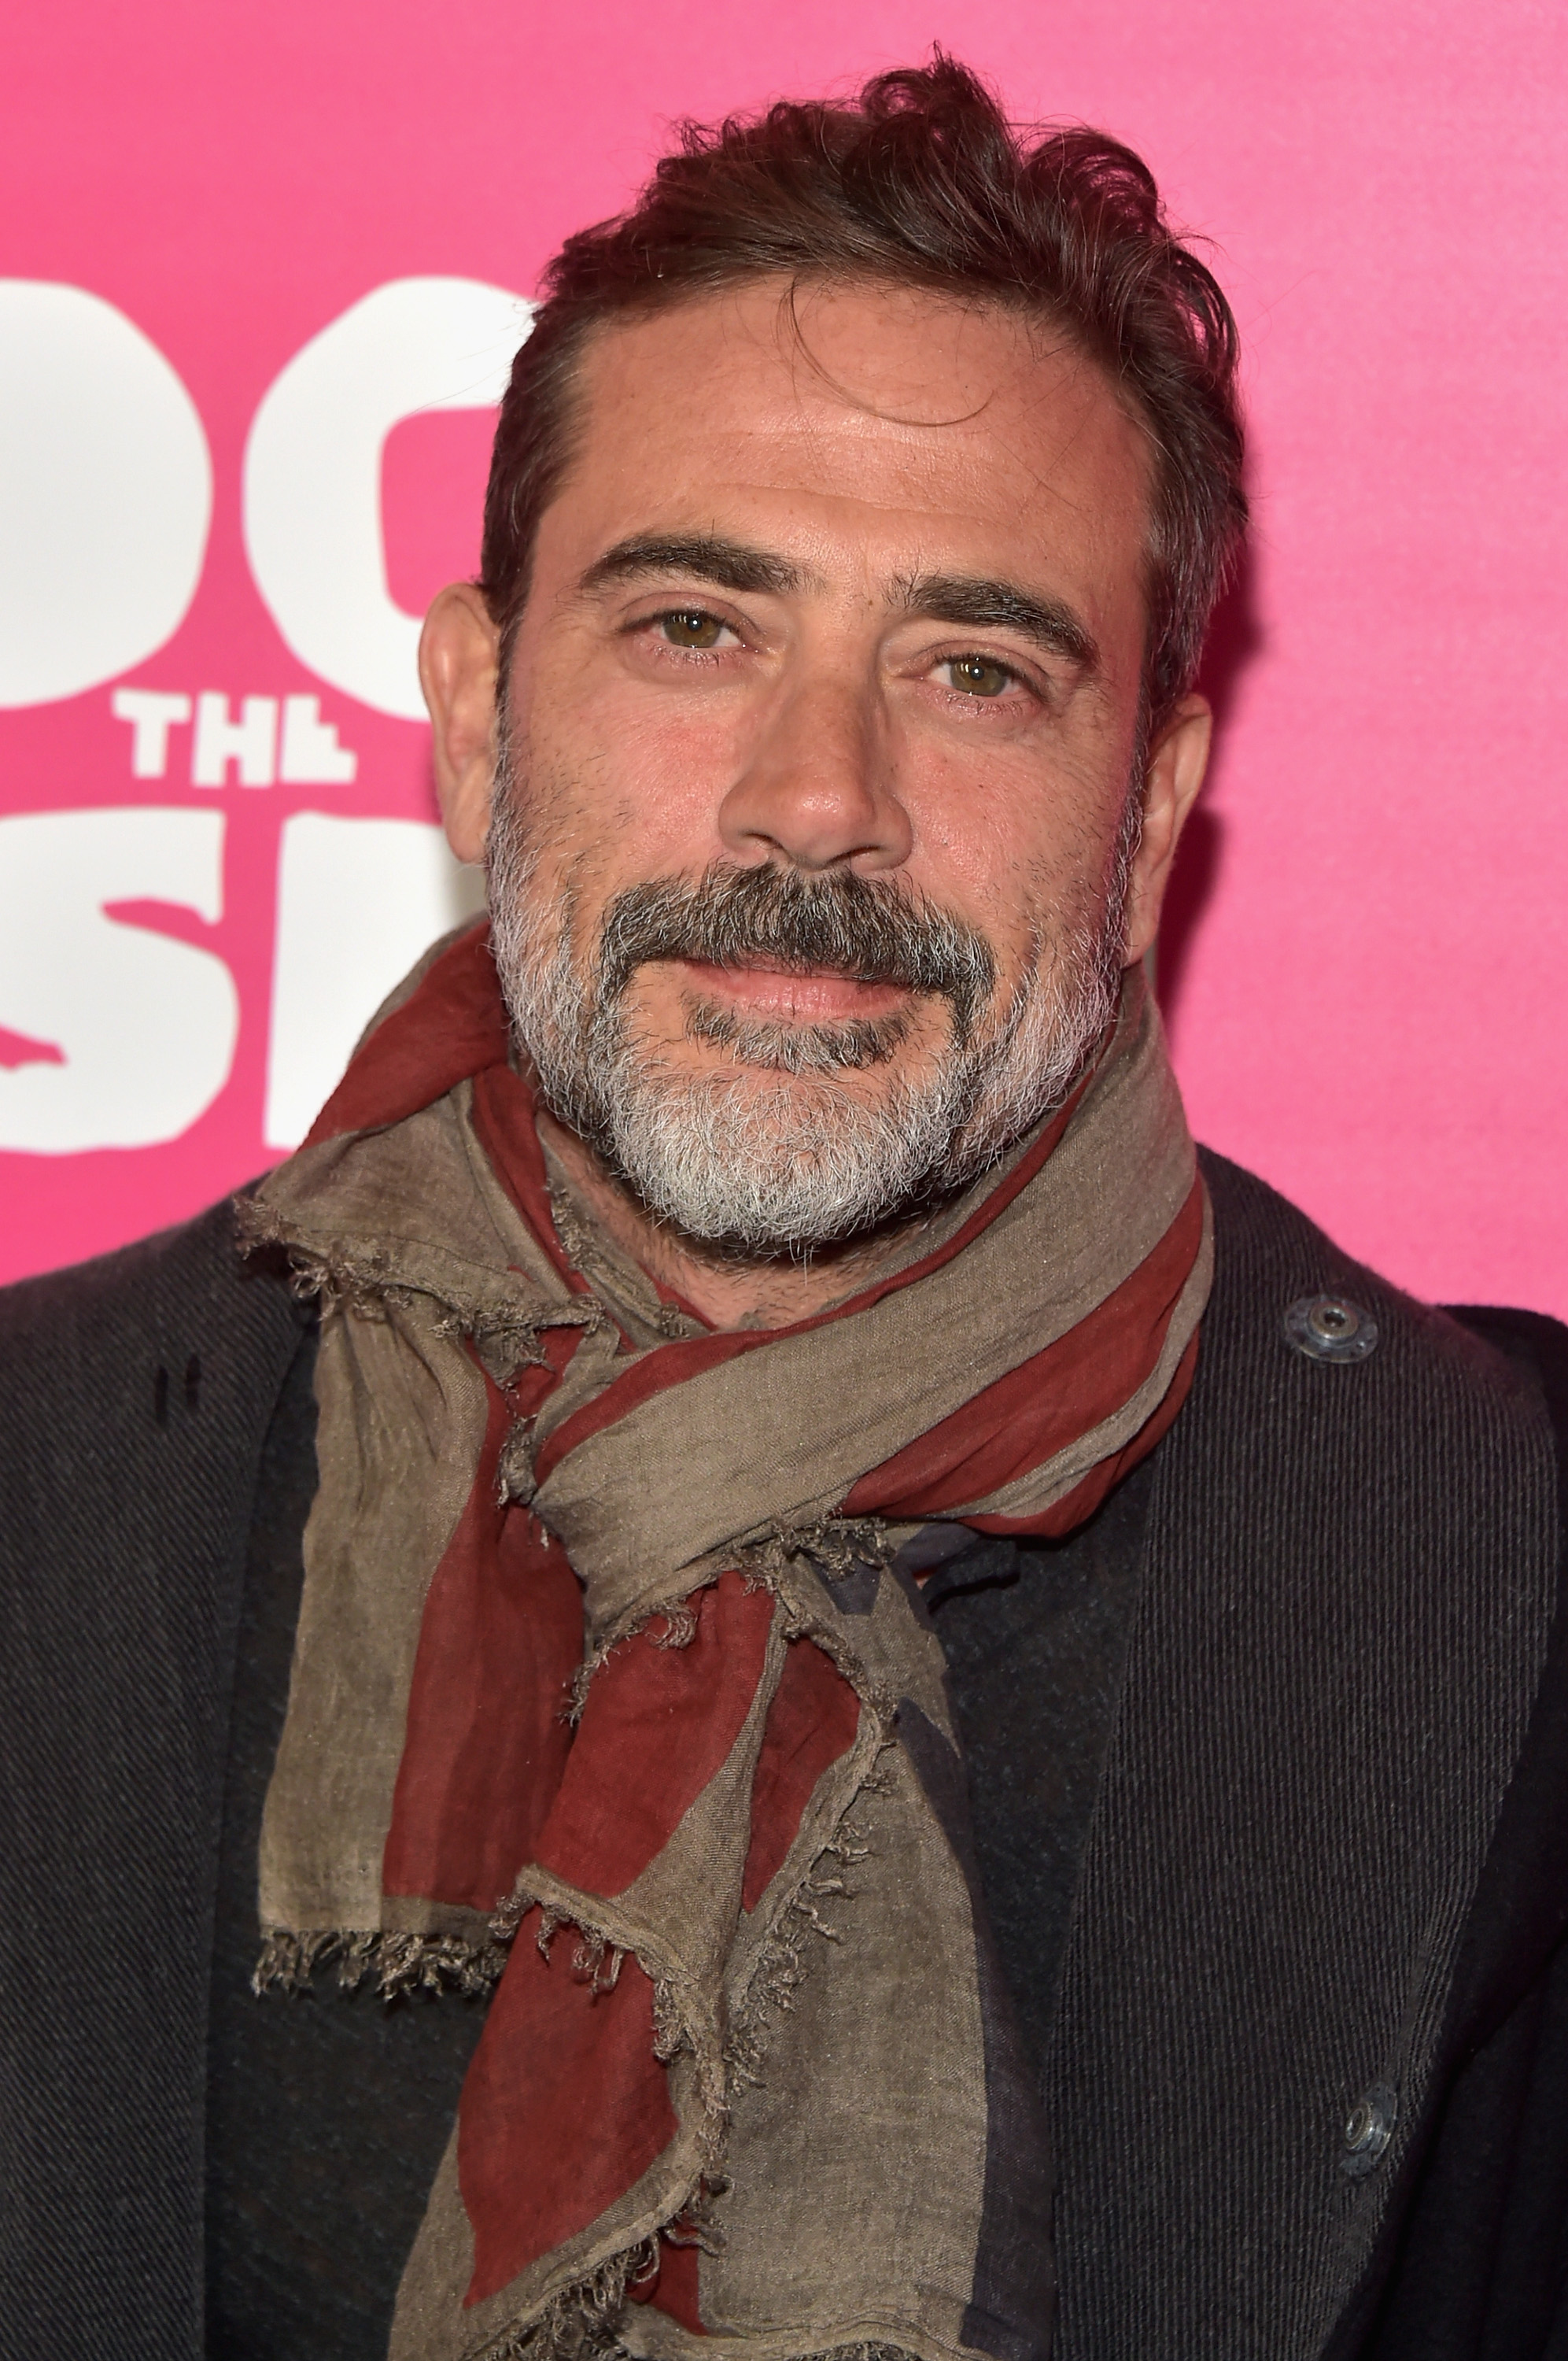 Burton Iphone Wallpaper Jeffrey Dean Morgan Wallpapers High Quality Download Free